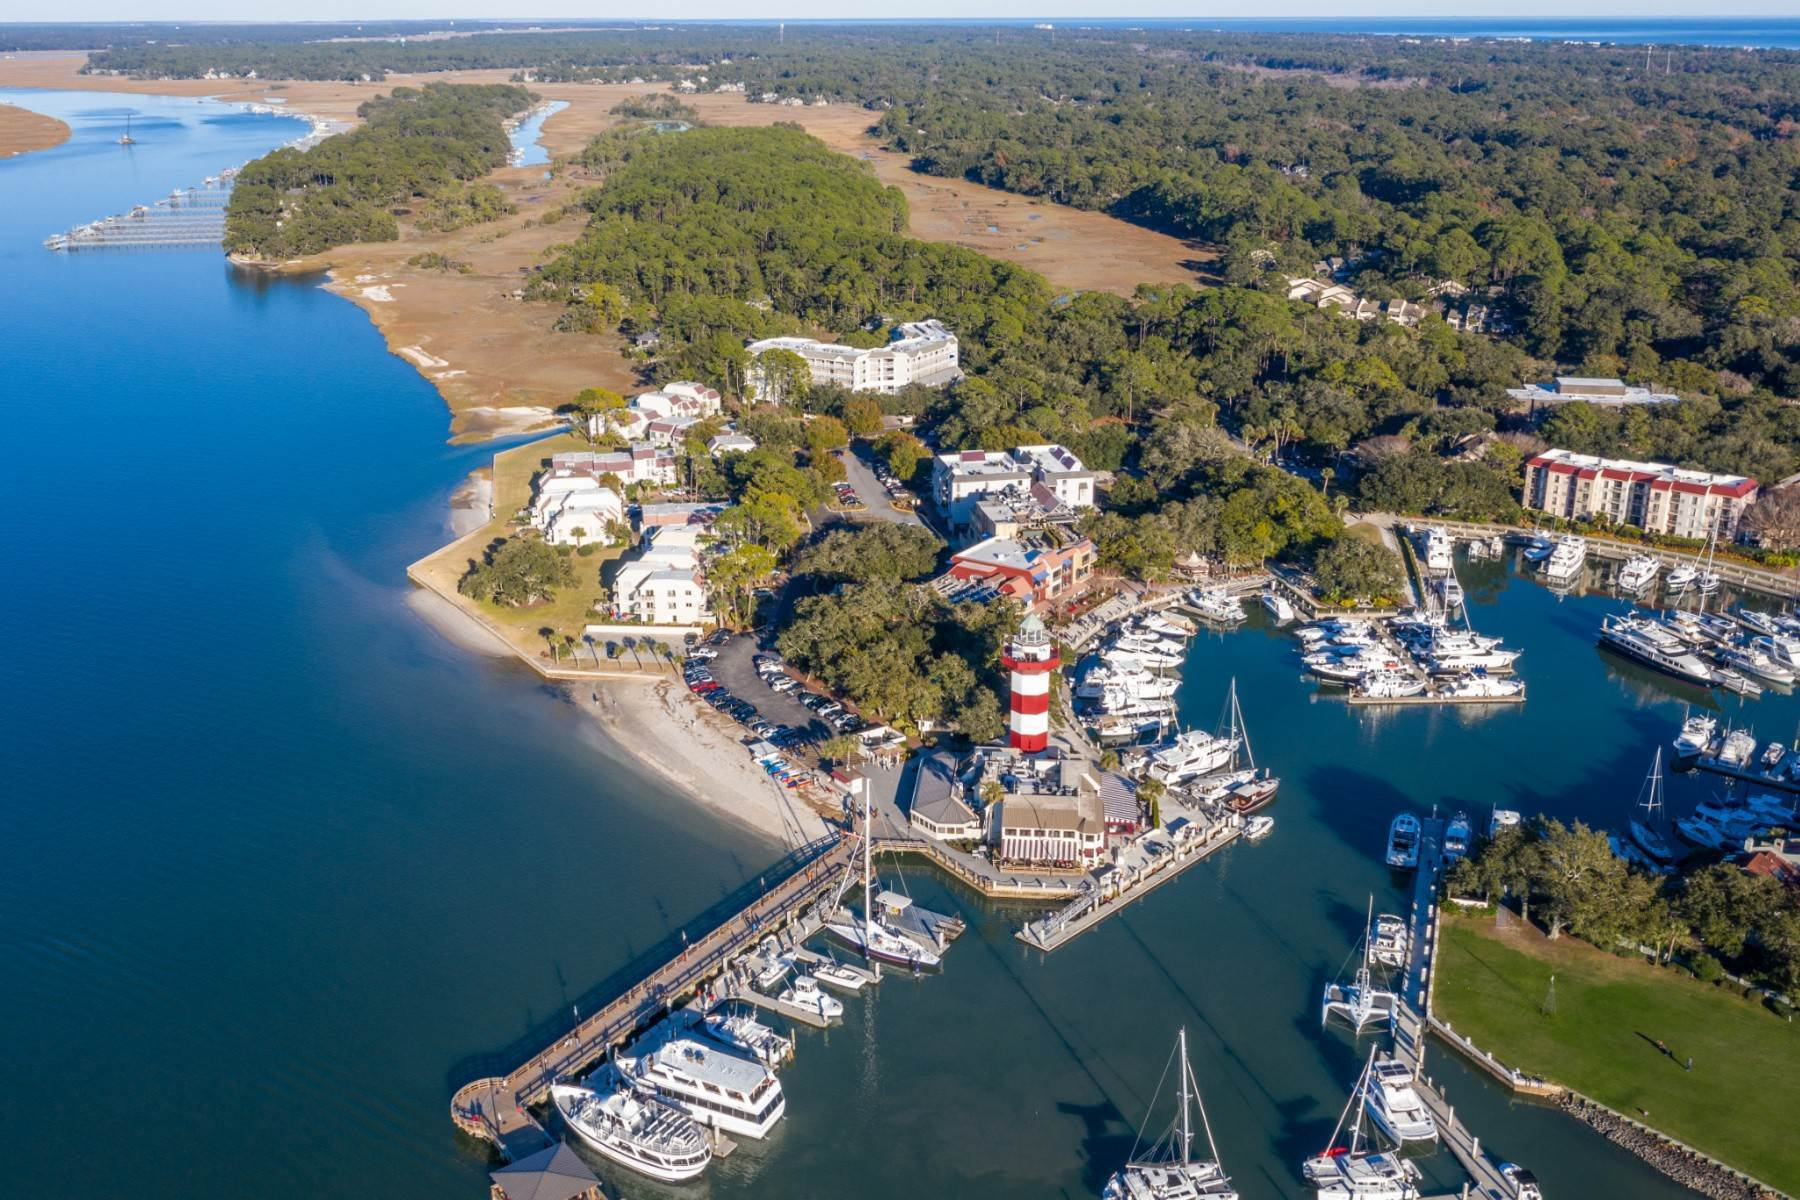 Property for Sale at Harbour Town Boat Slip 26 Harbour Town Yacht Basin Hilton Head Island, South Carolina 29928 United States